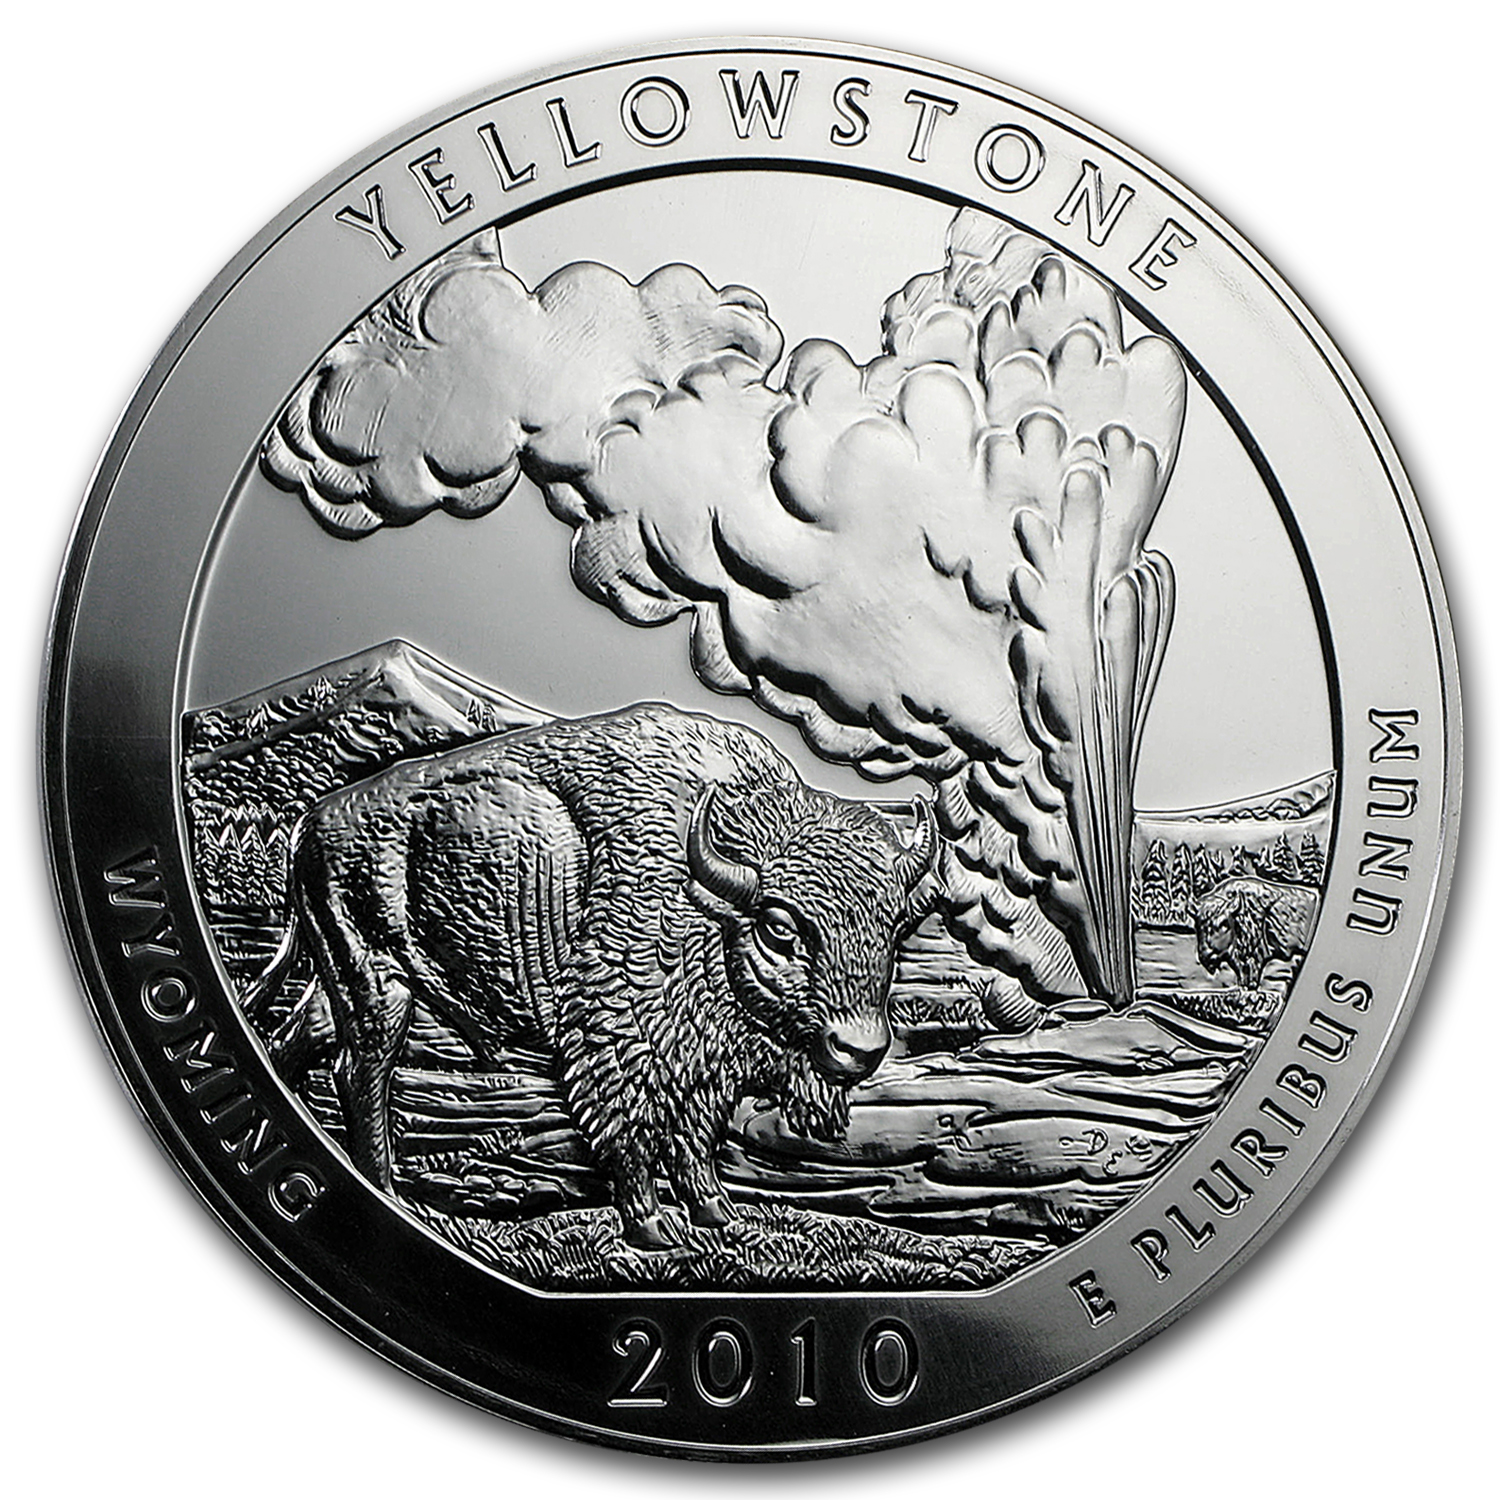 2010 5 oz Silver ATB - Yellowstone National Park, Wyoming